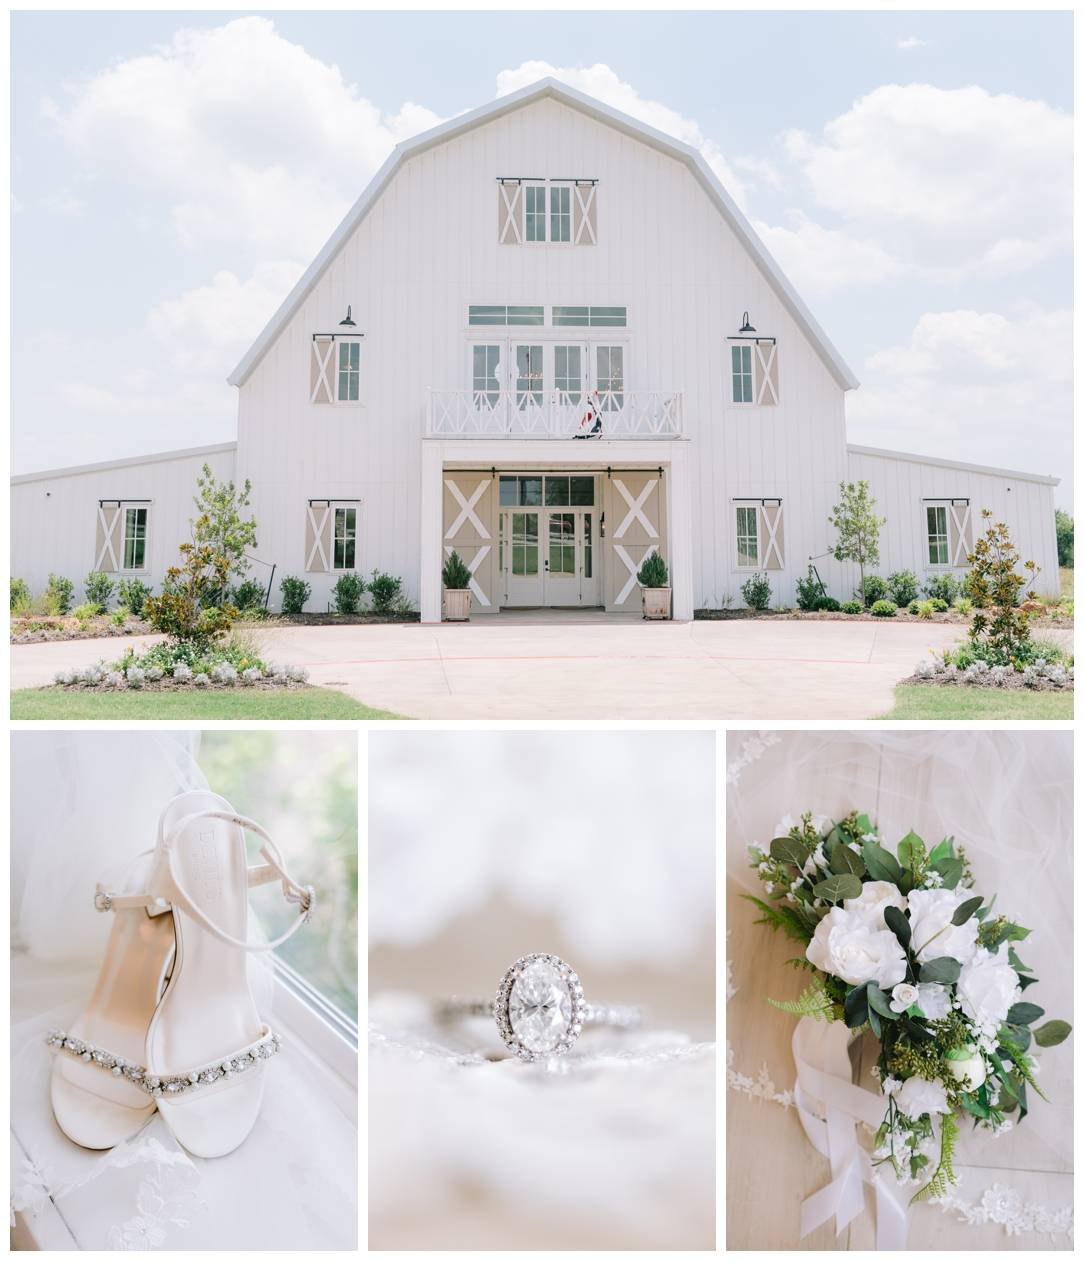 The Nest at Ruth Farms Bridals